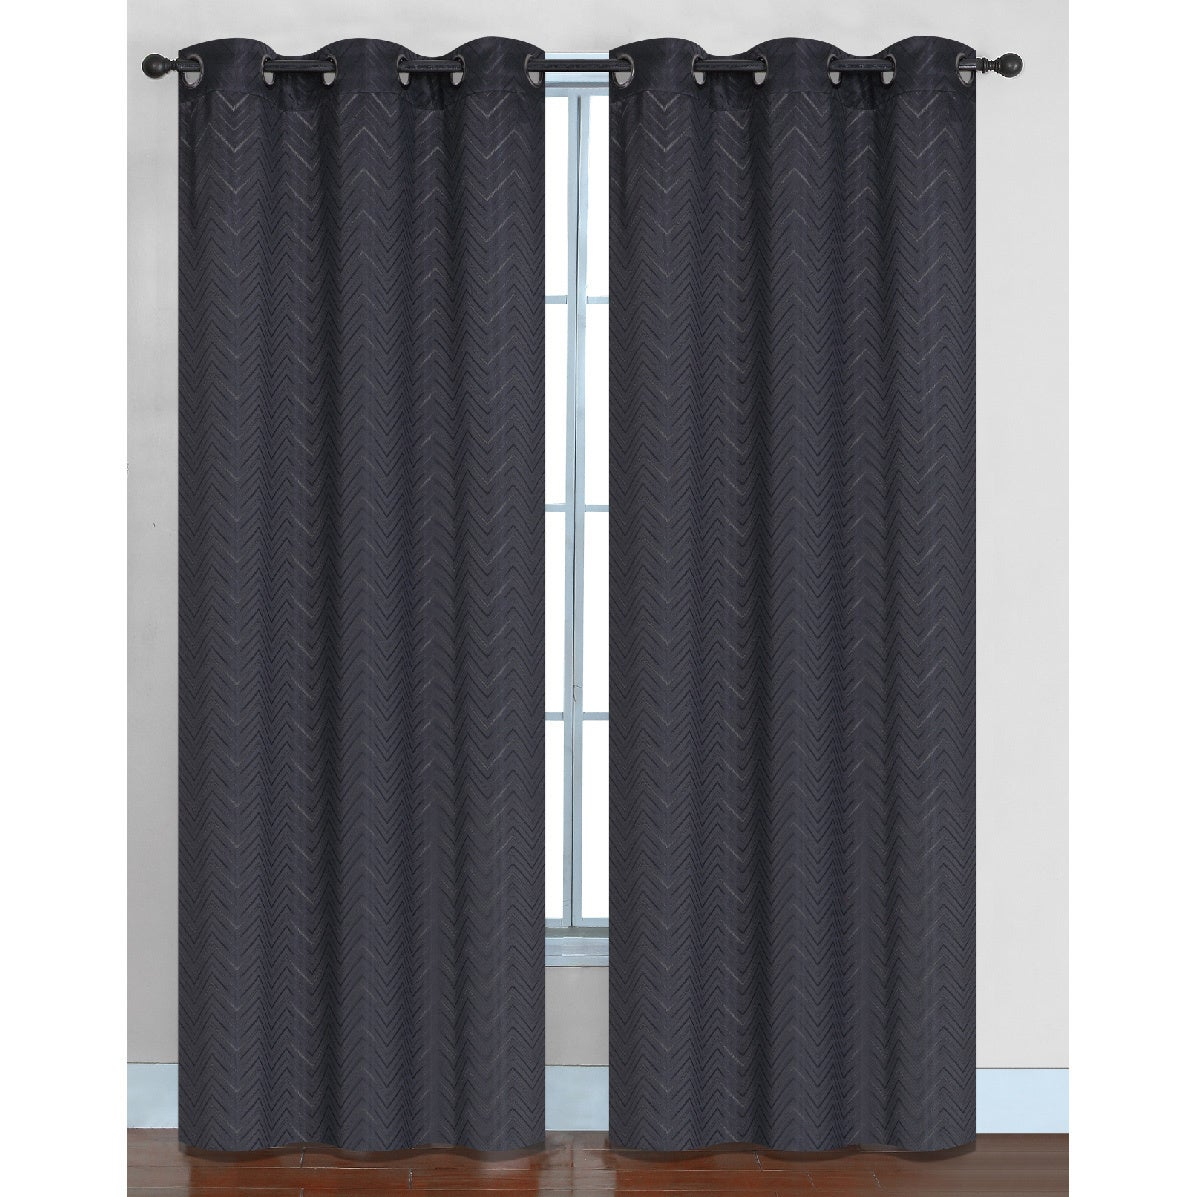 Chevron Faux Silk Blackout Grommet Top 84 Inch Curtain Panel Pair – 76 X 84 Within Chevron Blackout Grommet Curtain Panels (View 6 of 20)